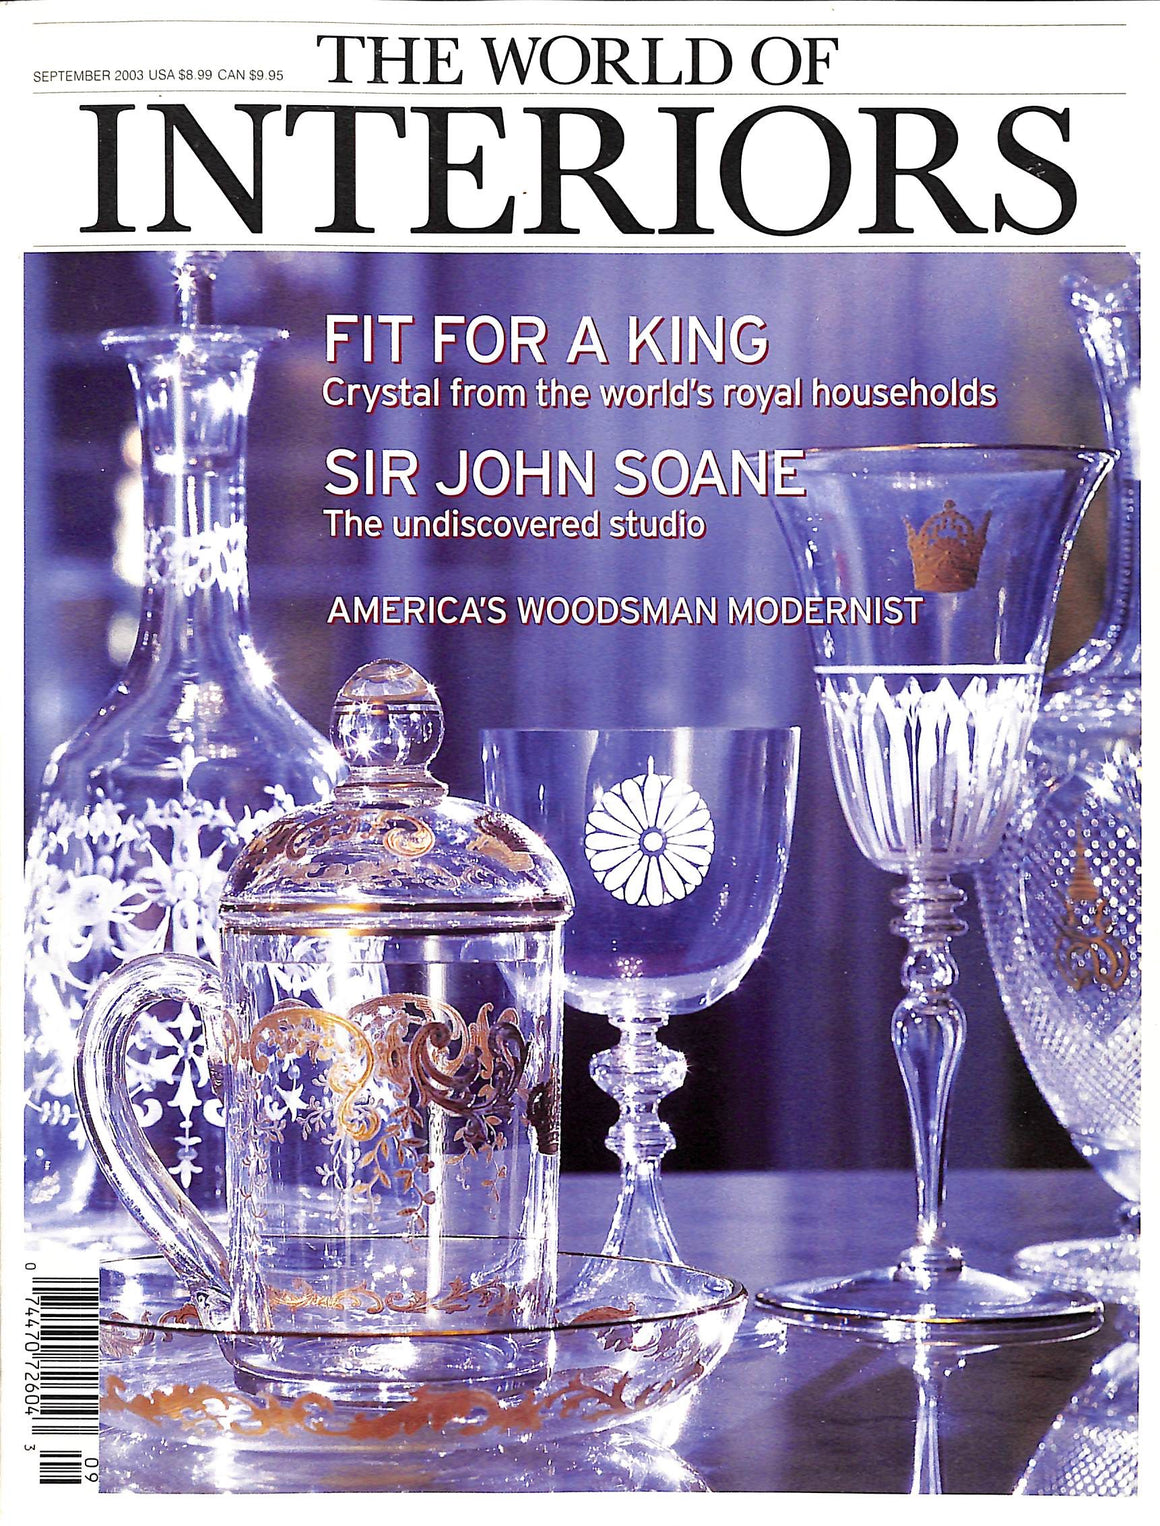 The World of Interior September 2003